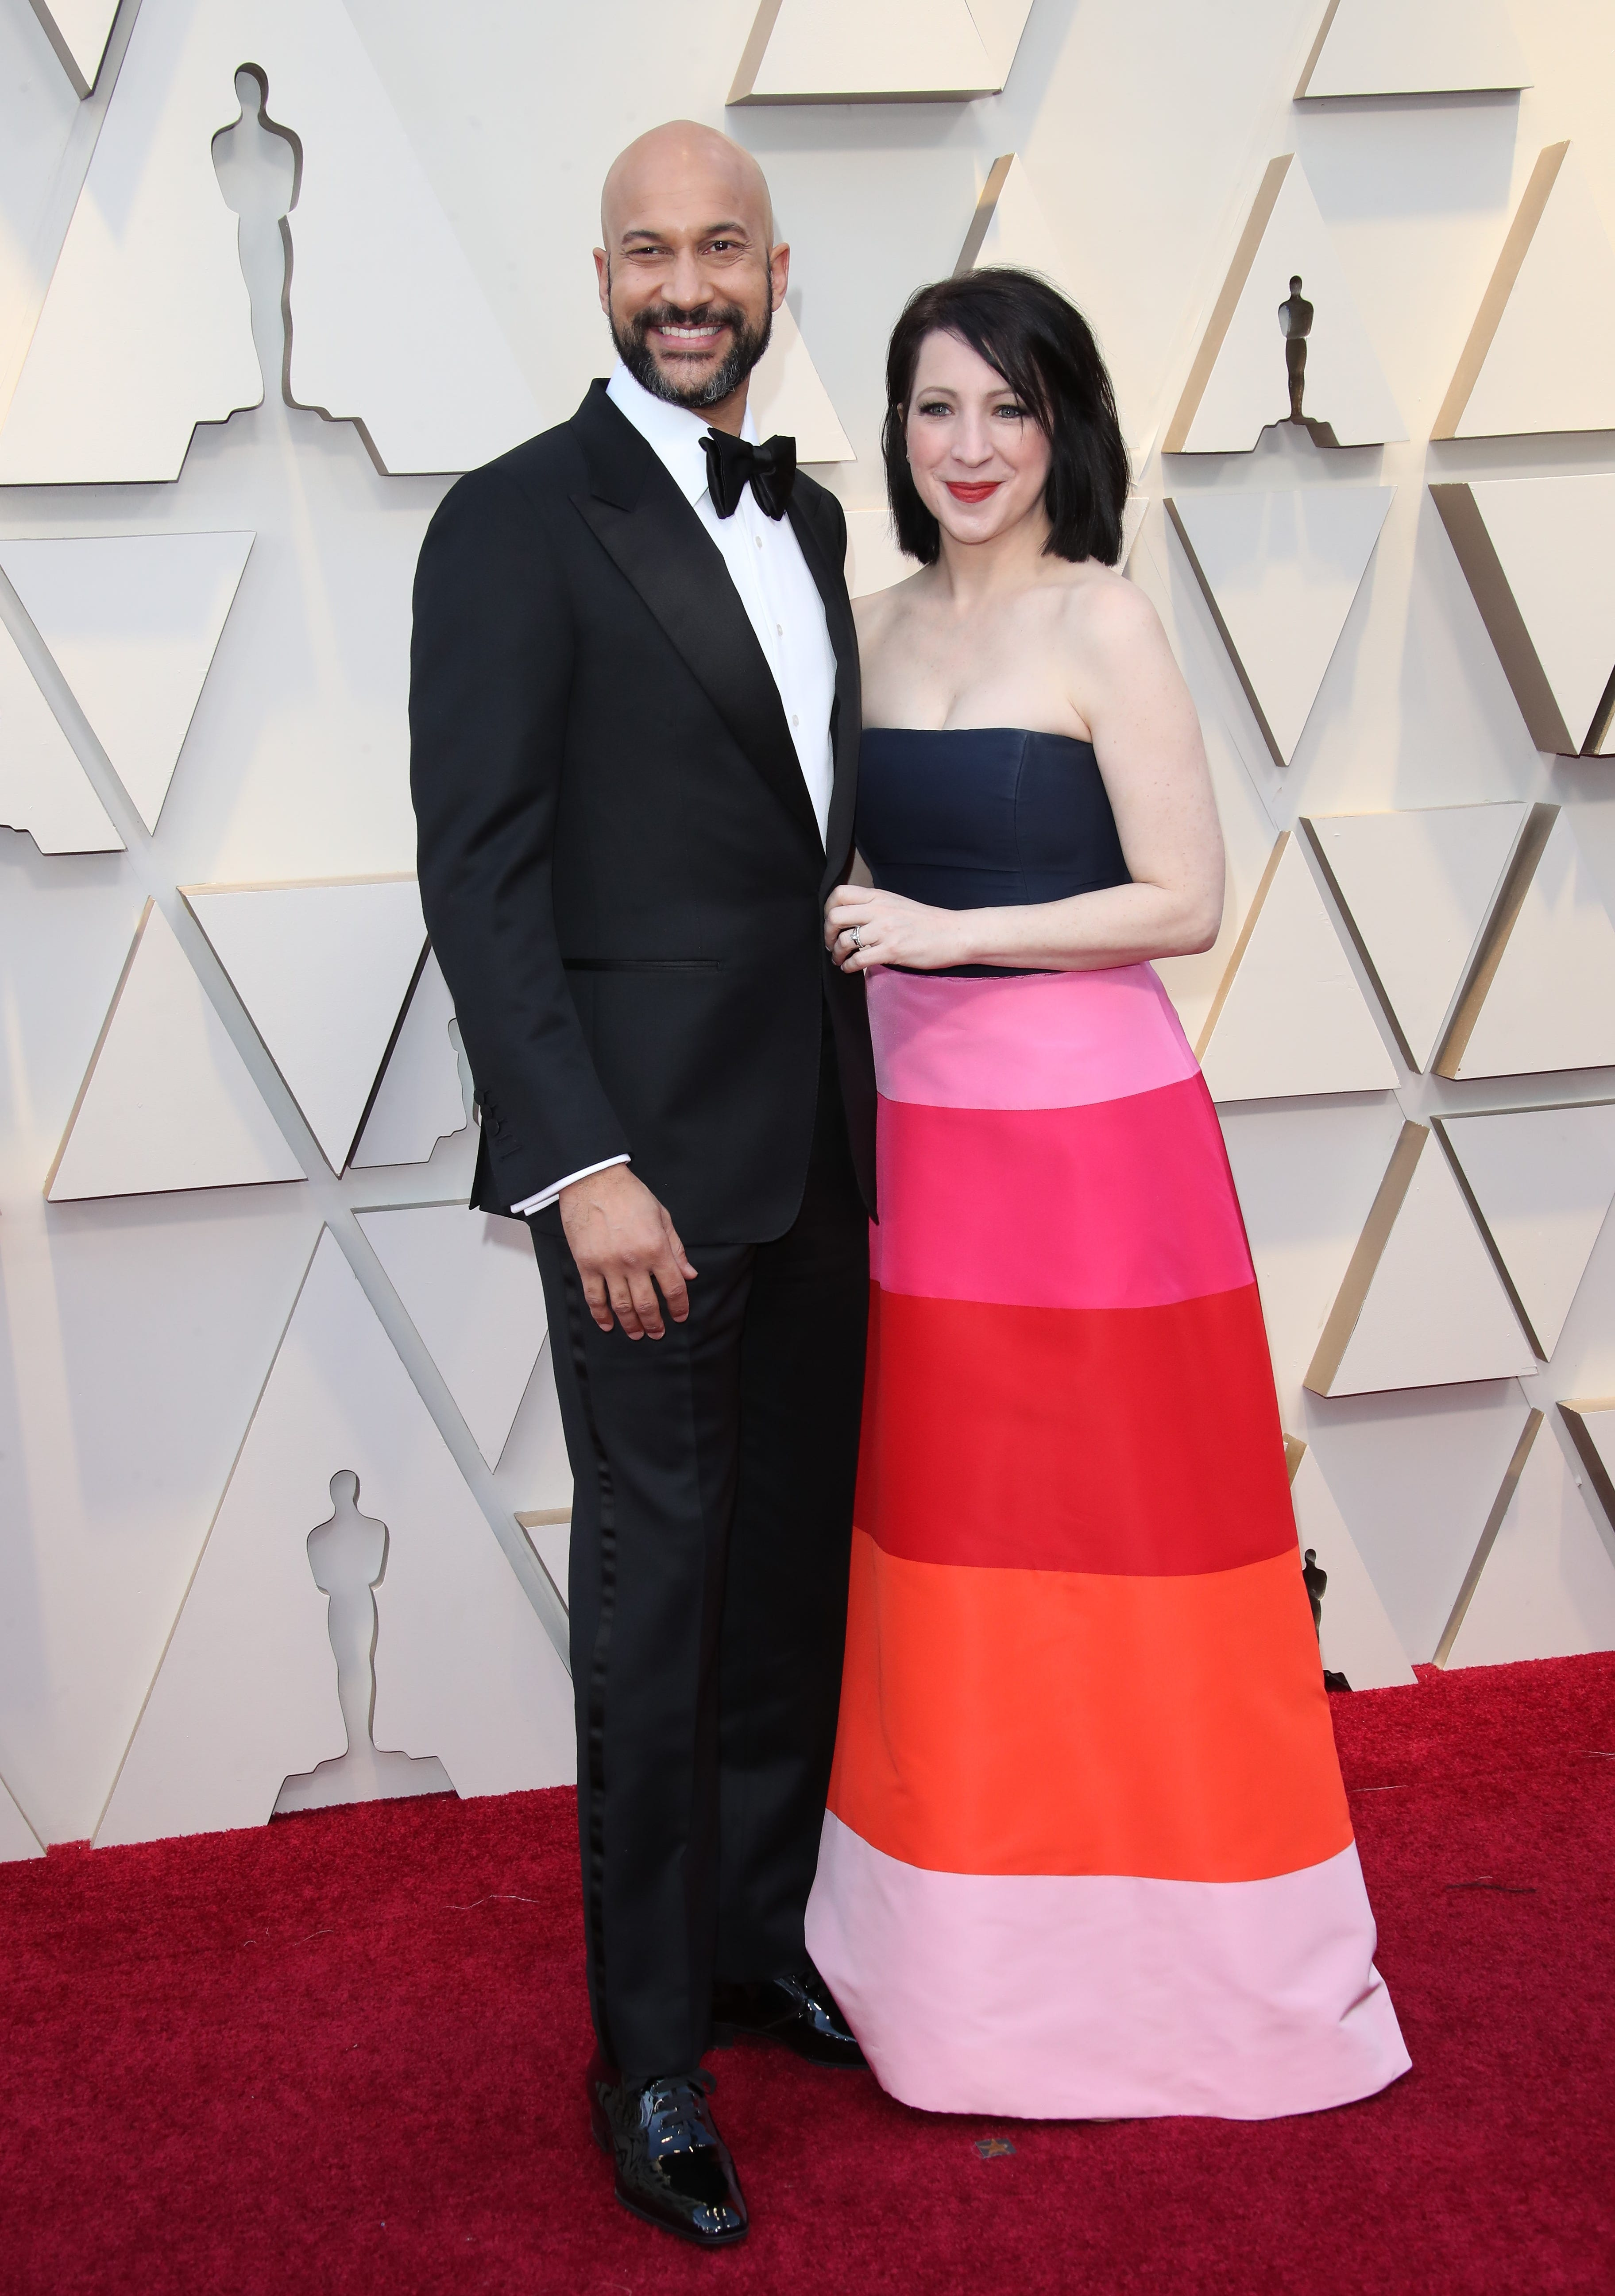 February 24, 2019; Los Angeles, CA, USA; Keegan-Michael Key, left and Elisa Pugliese arrive at the 91st Academy Awards at the Dolby Theatre. Mandatory Credit: Dan MacMedan-USA TODAY NETWORK (Via OlyDrop)